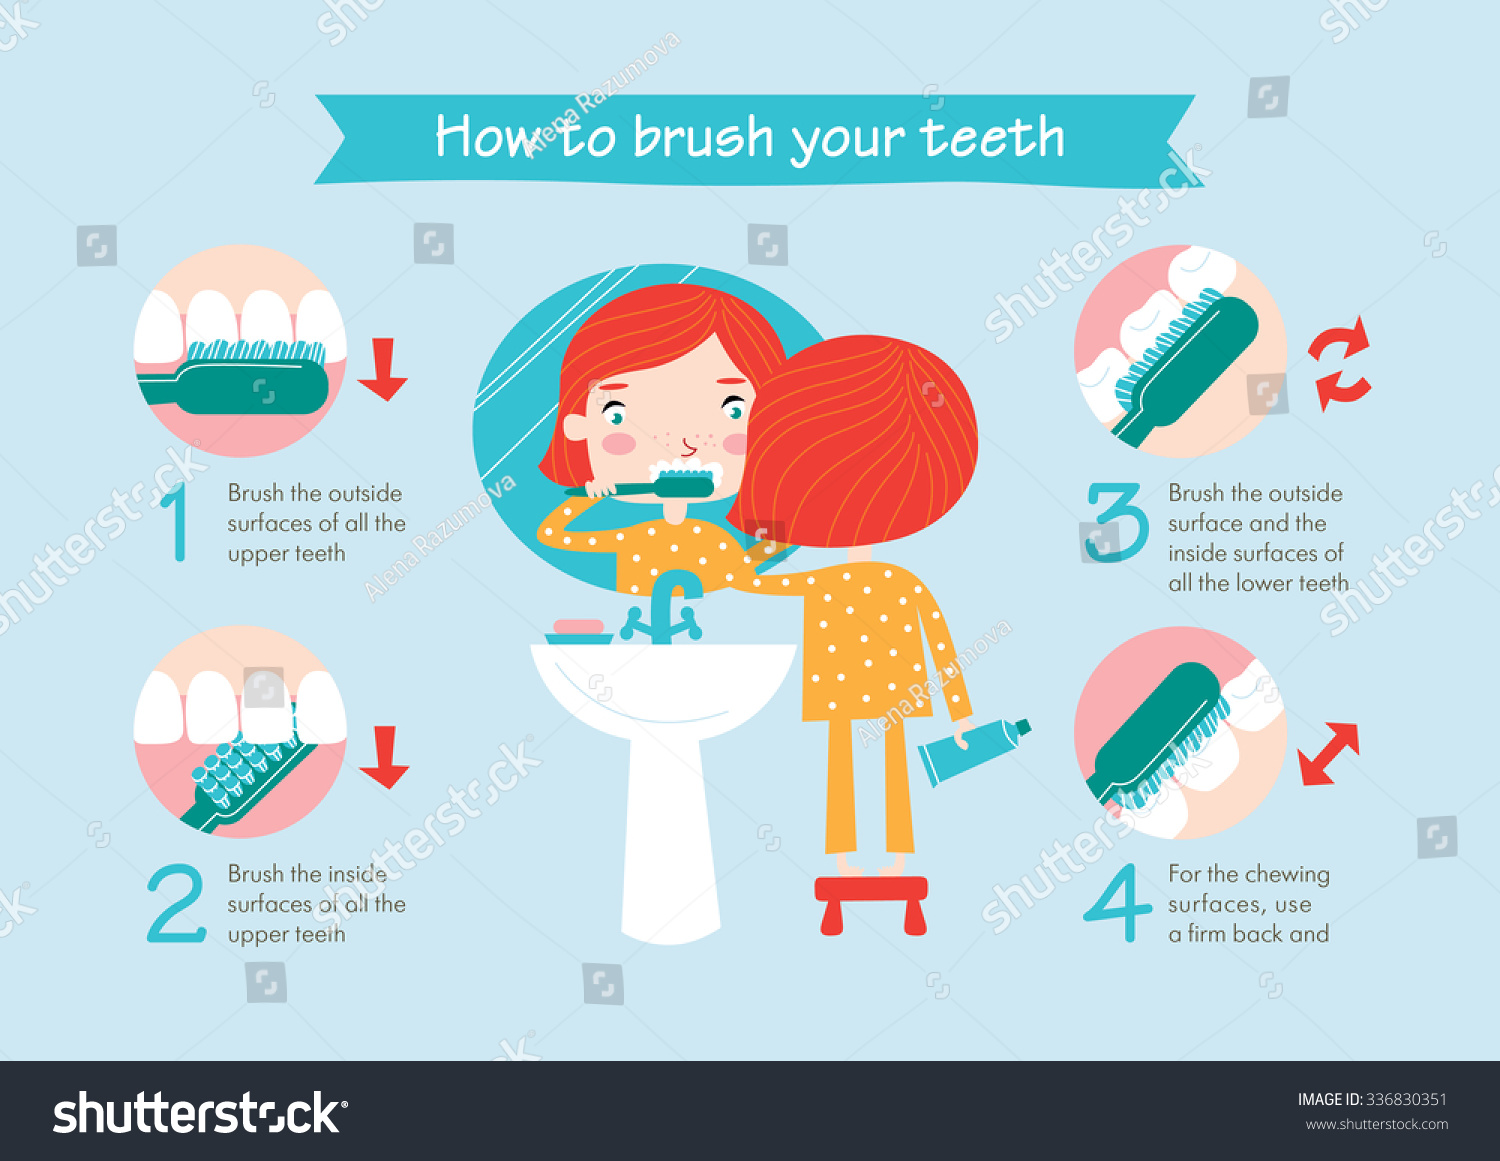 brushing teeth essay How to brush your teeth brushing your teeth is not just for a whiter smile and fresher breath, it's critical for your overall health .